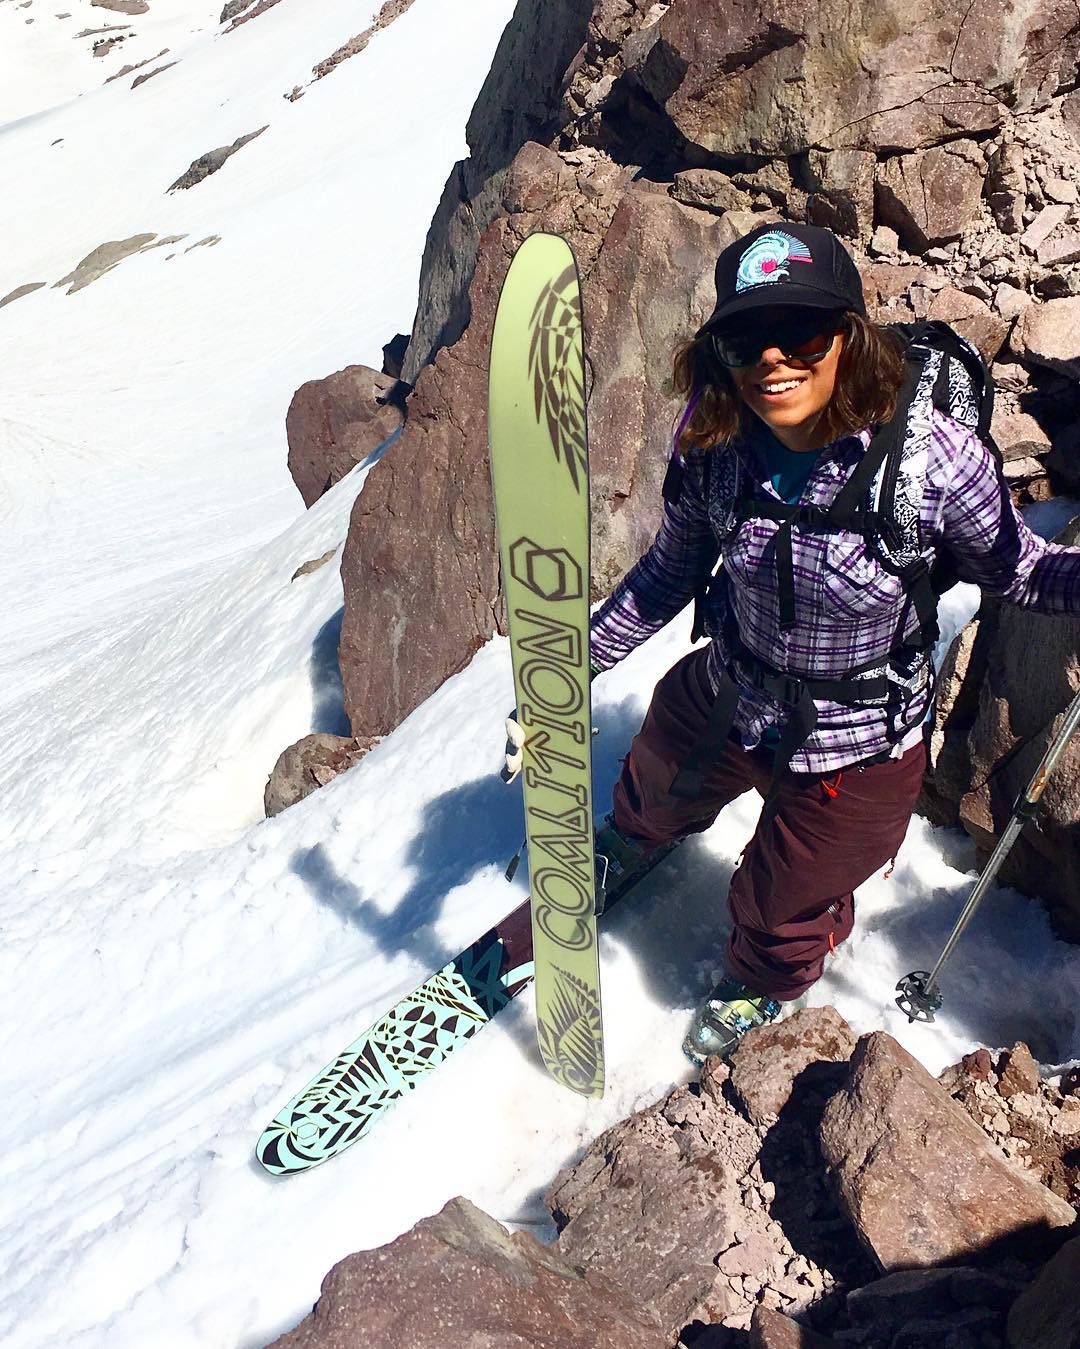 COO @nosnowsnakes won't give it up! A pack of die hards sent it to Lassen for some spr...summer turns! * * * And how about those fresh, #usa made touring skis! One of our newbies, the La Nieve! * * * #sisterhoodofshred #lanieve #chooseadventure #skiing...